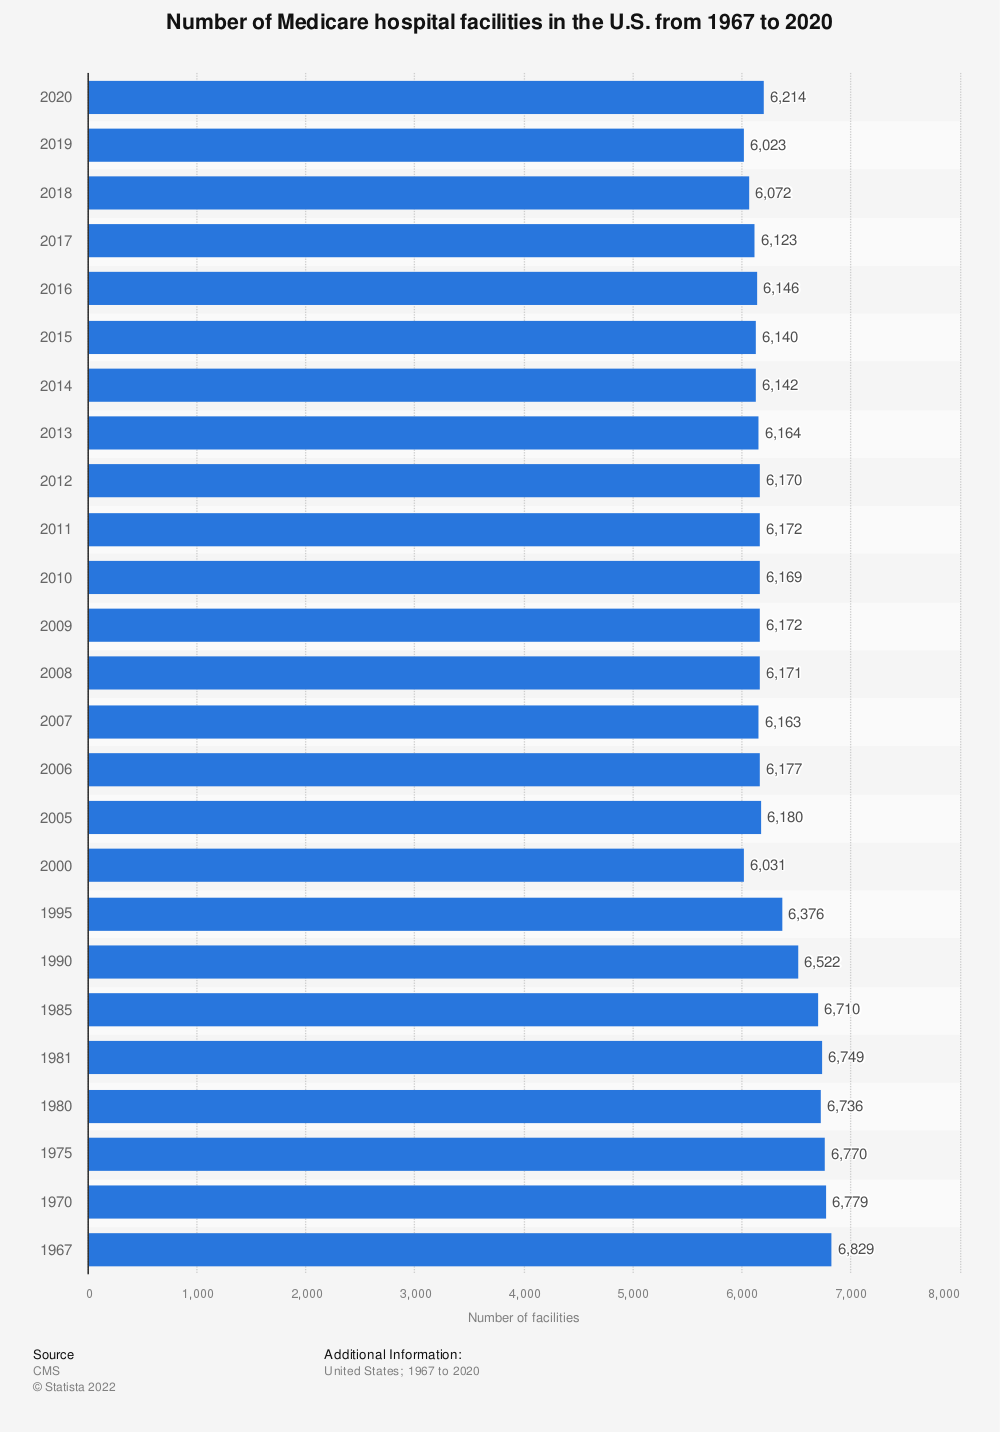 Statistic: Number of Medicare hospital facilities in the U.S. from 1967 to 2017* | Statista